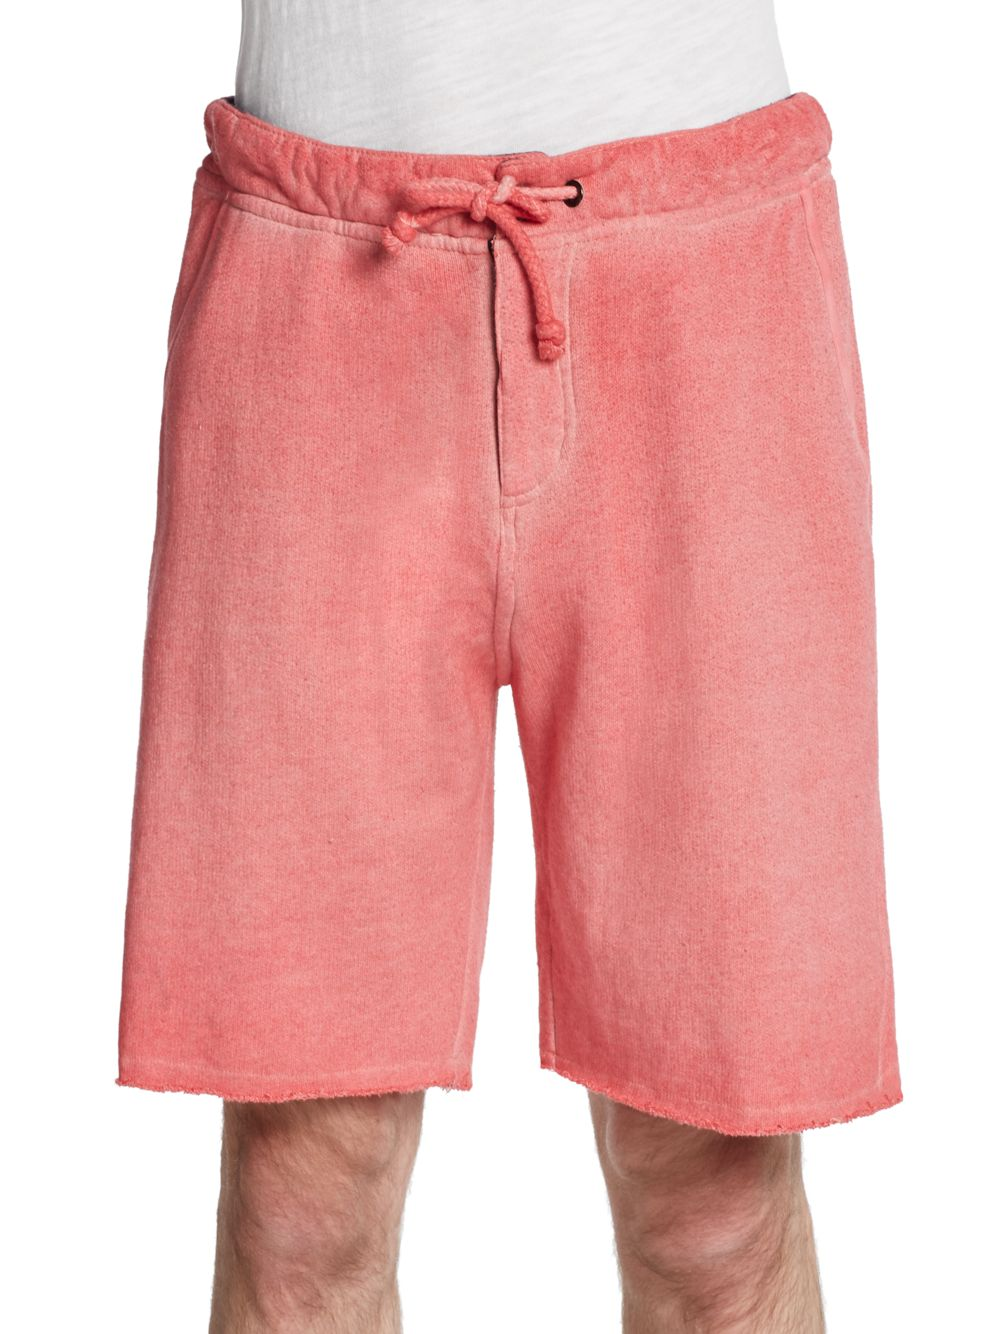 746722c8c Cohesive & Co. Faded Cotton Sweat Shorts in Pink for Men - Lyst